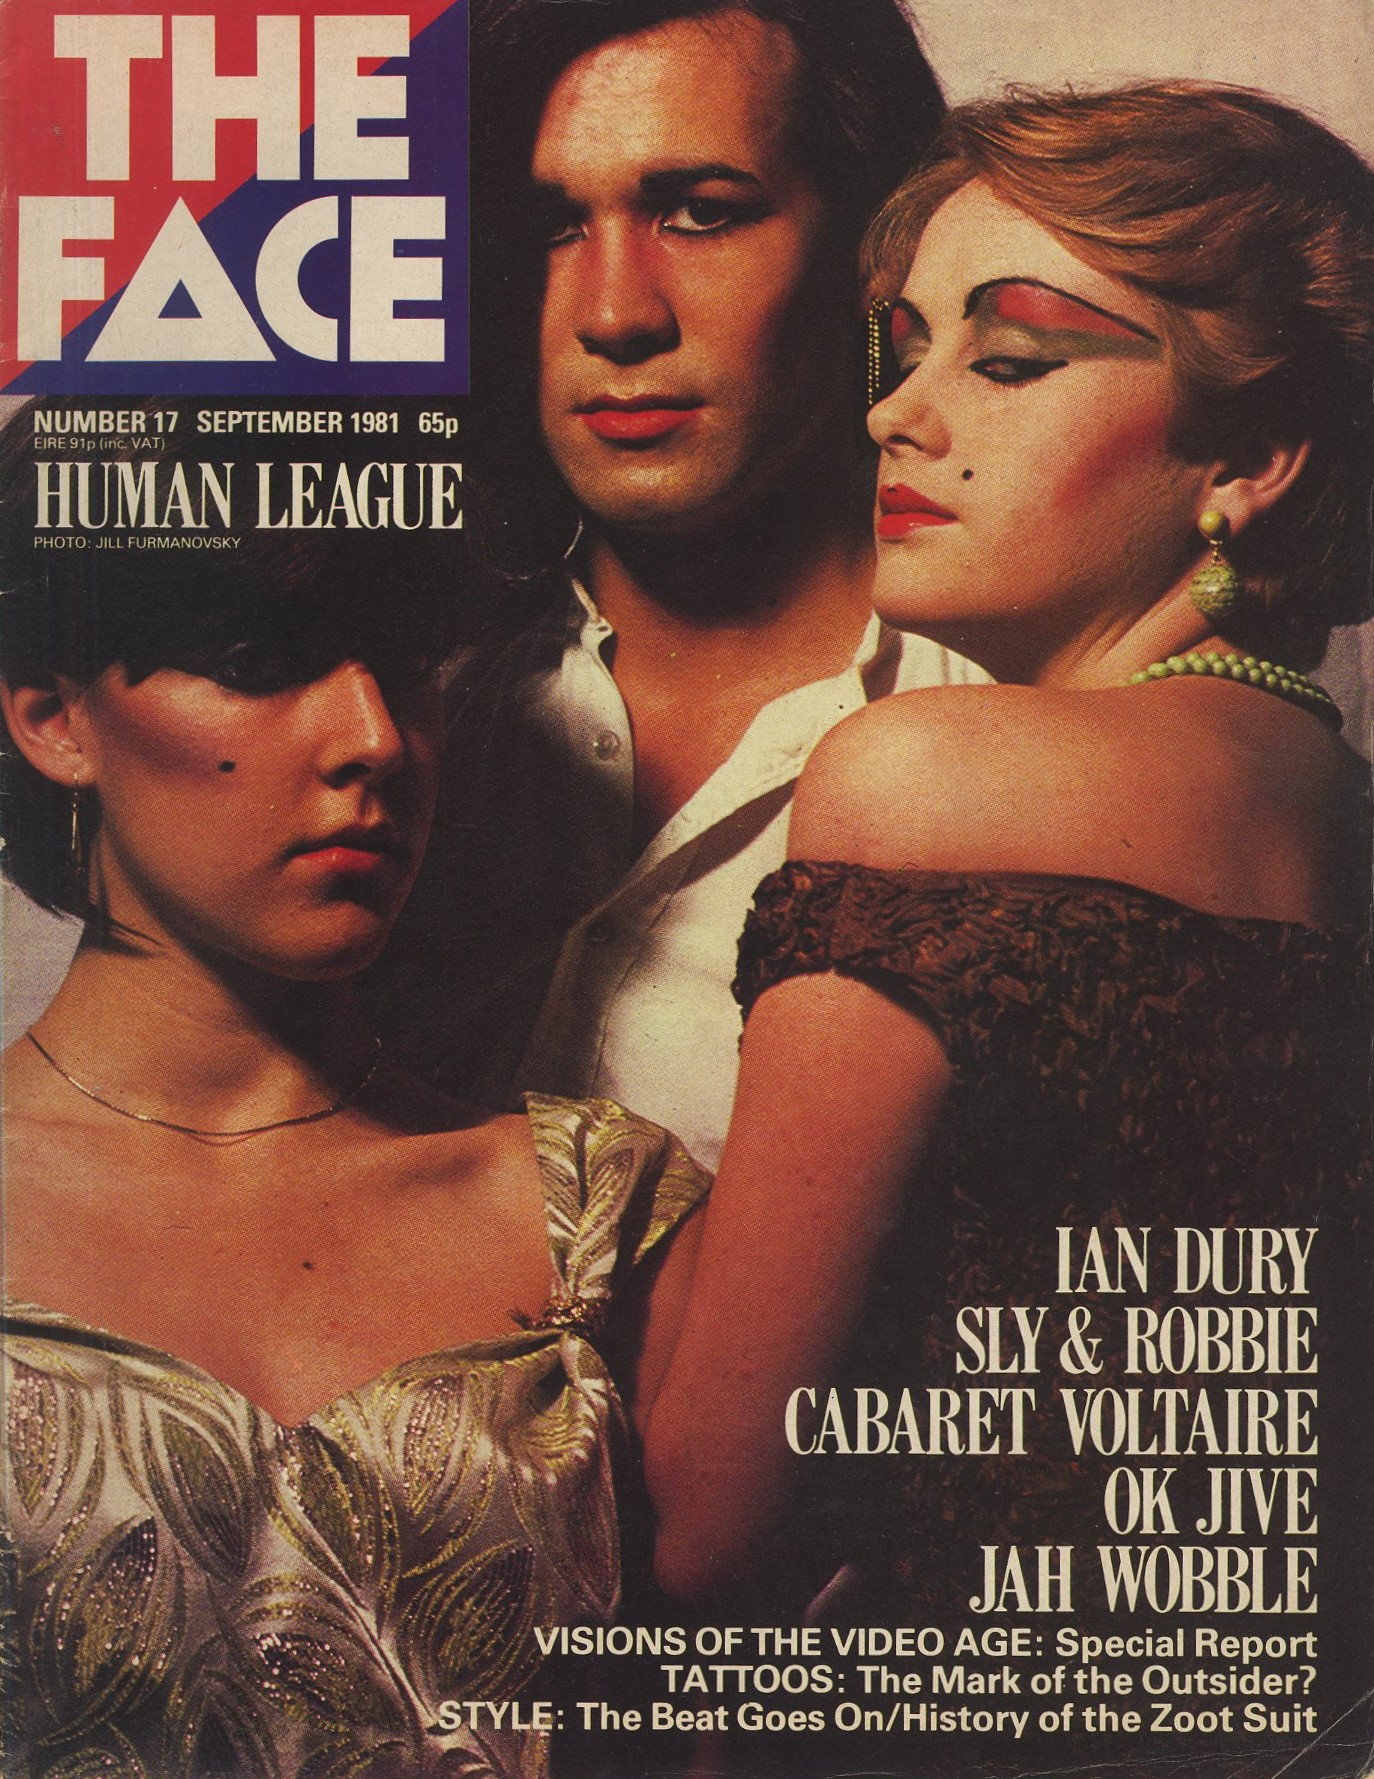 human league photography jill furmanovsky the face number 17 september 1981